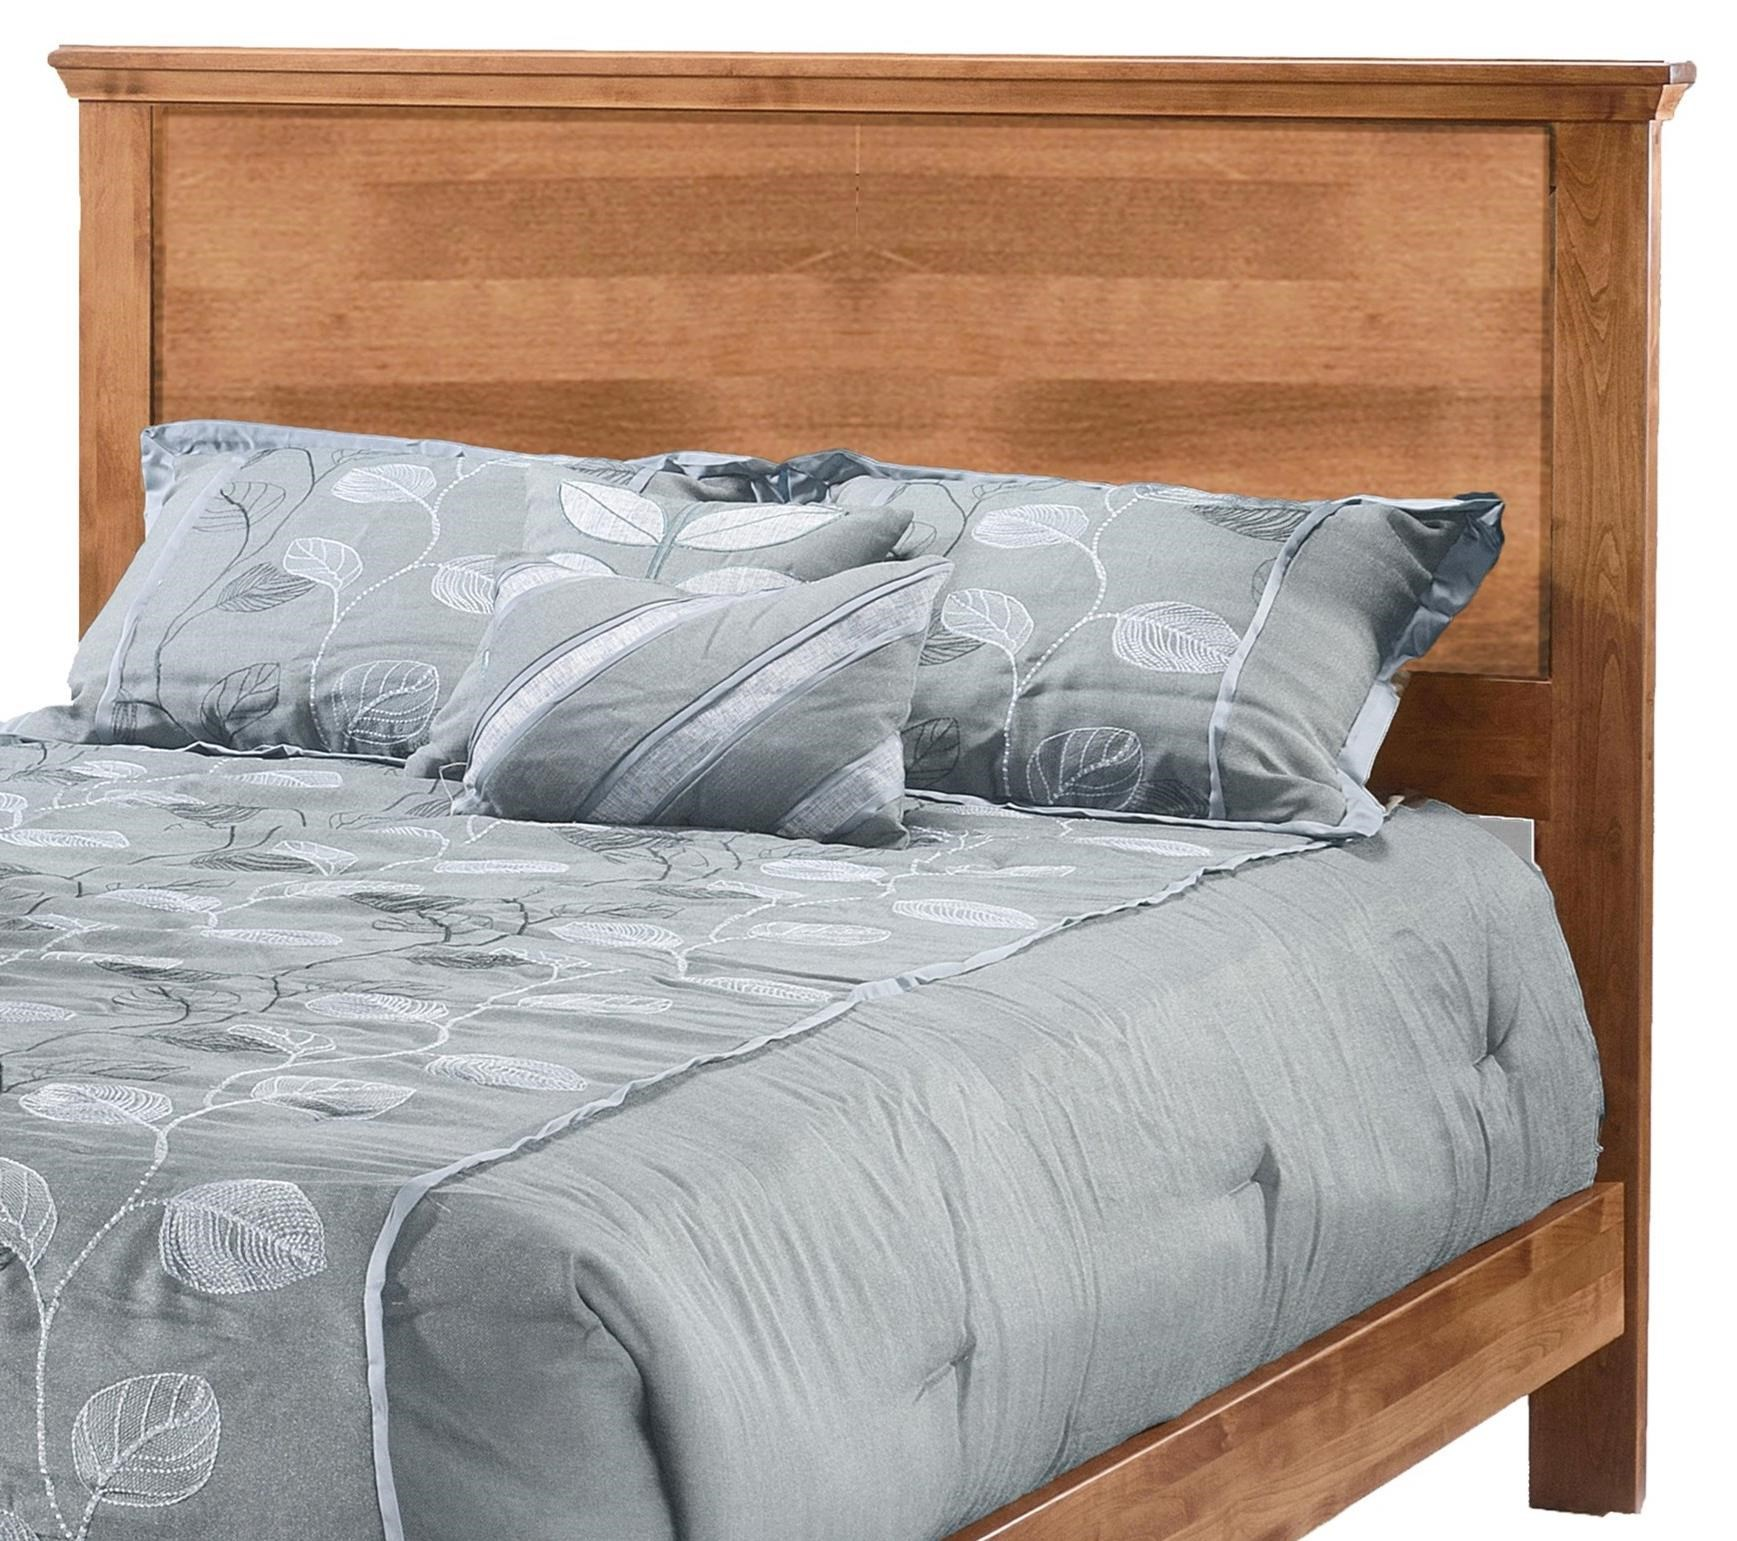 Heritage Full Plank Headboard Only by Archbold Furniture at Steger's Furniture